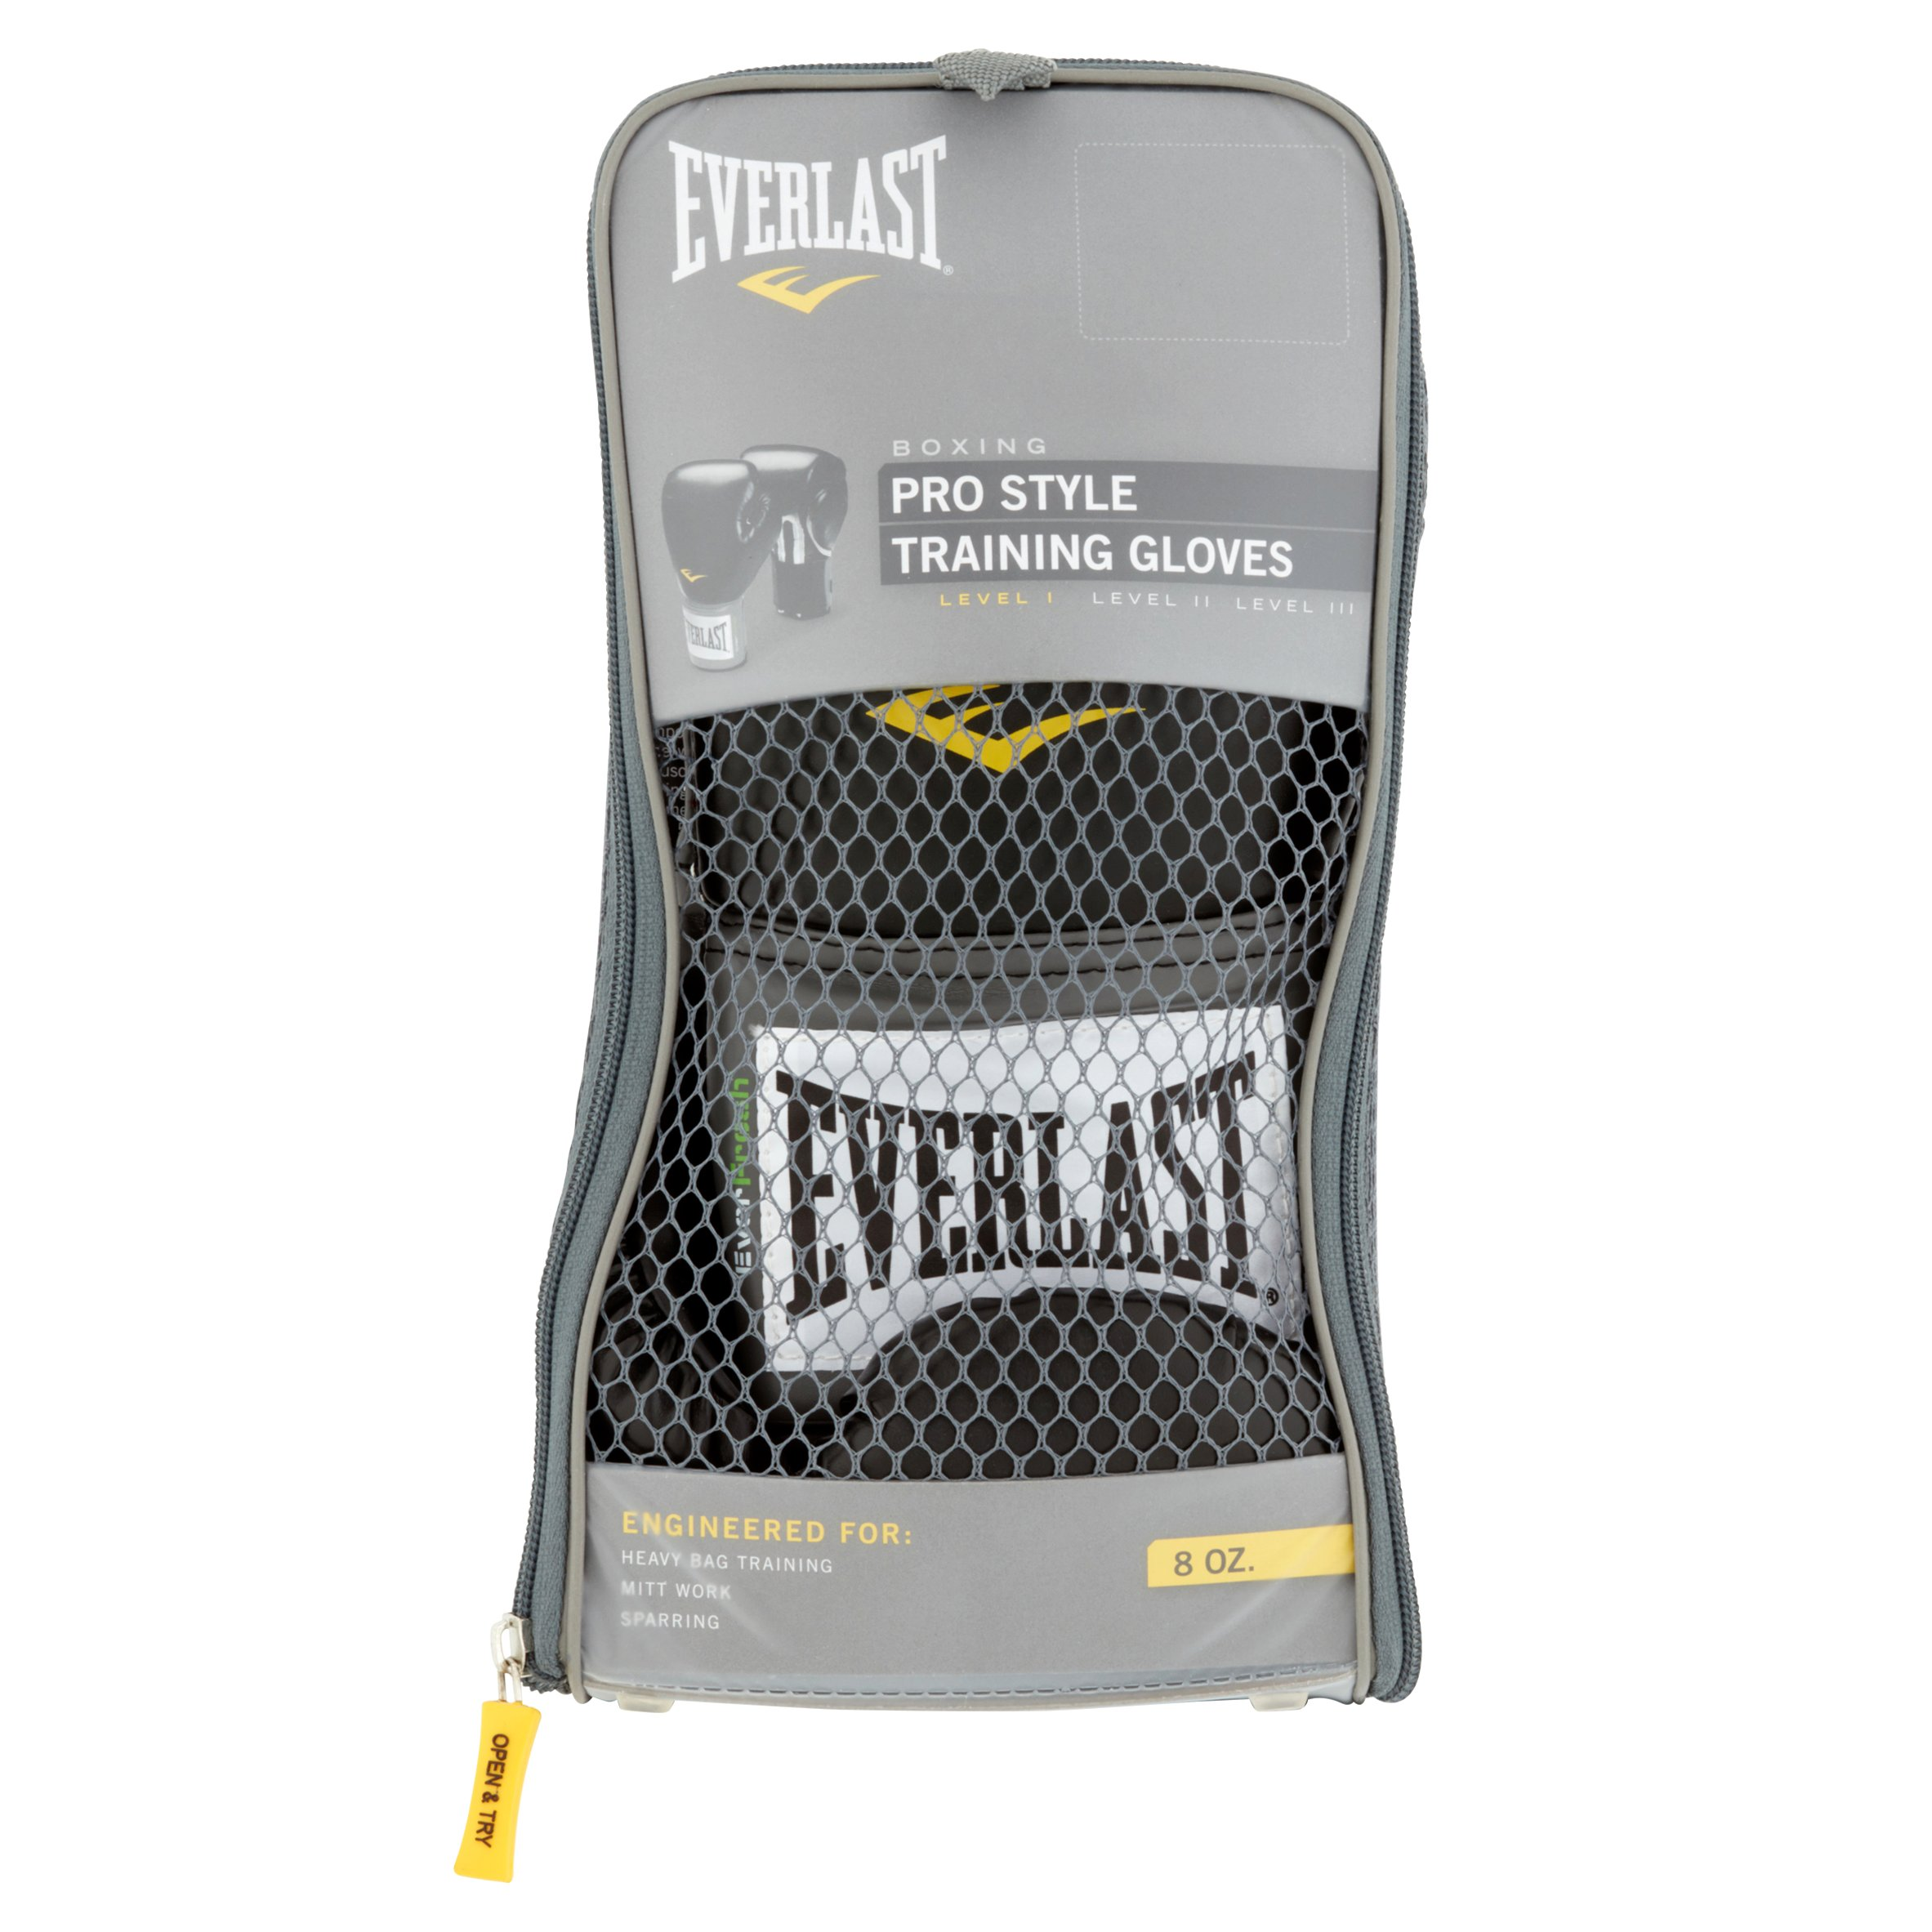 Everlast Pro Style Training Gloves, 8 oz by Everlast Sports MFG. Corp.